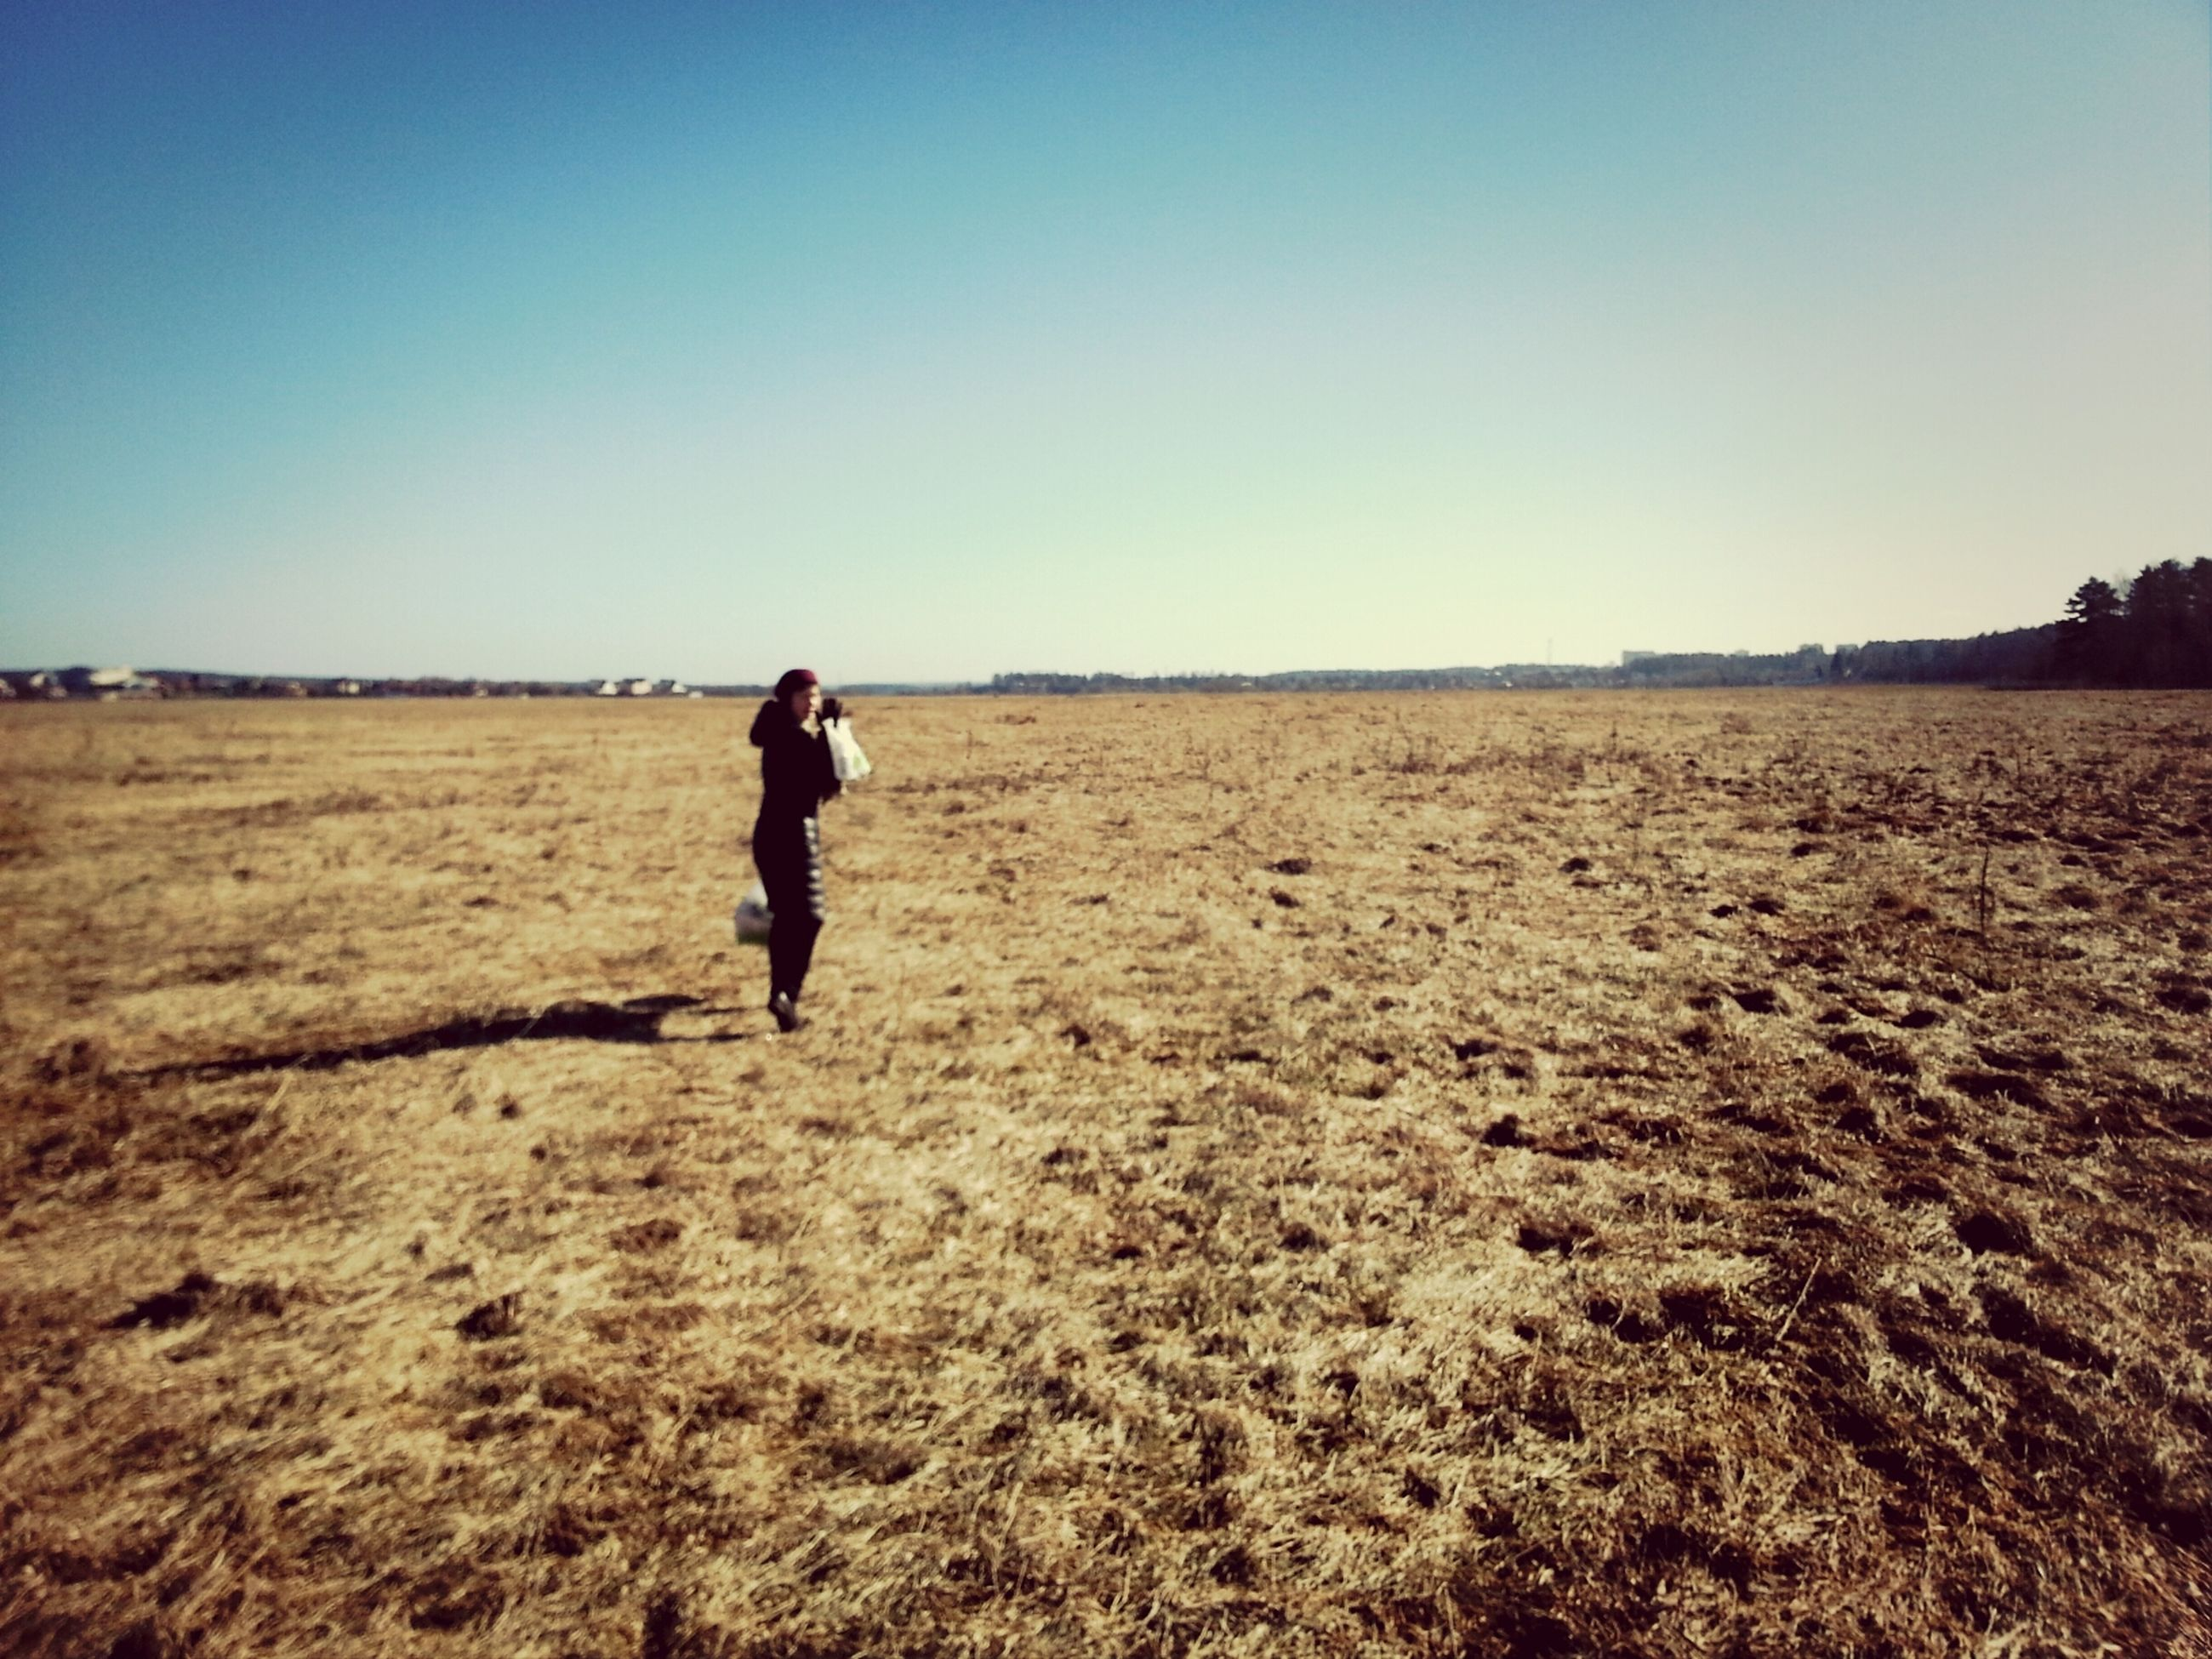 clear sky, copy space, landscape, full length, field, lifestyles, leisure activity, horizon over land, tranquility, rear view, standing, walking, tranquil scene, nature, sand, men, agriculture, solitude